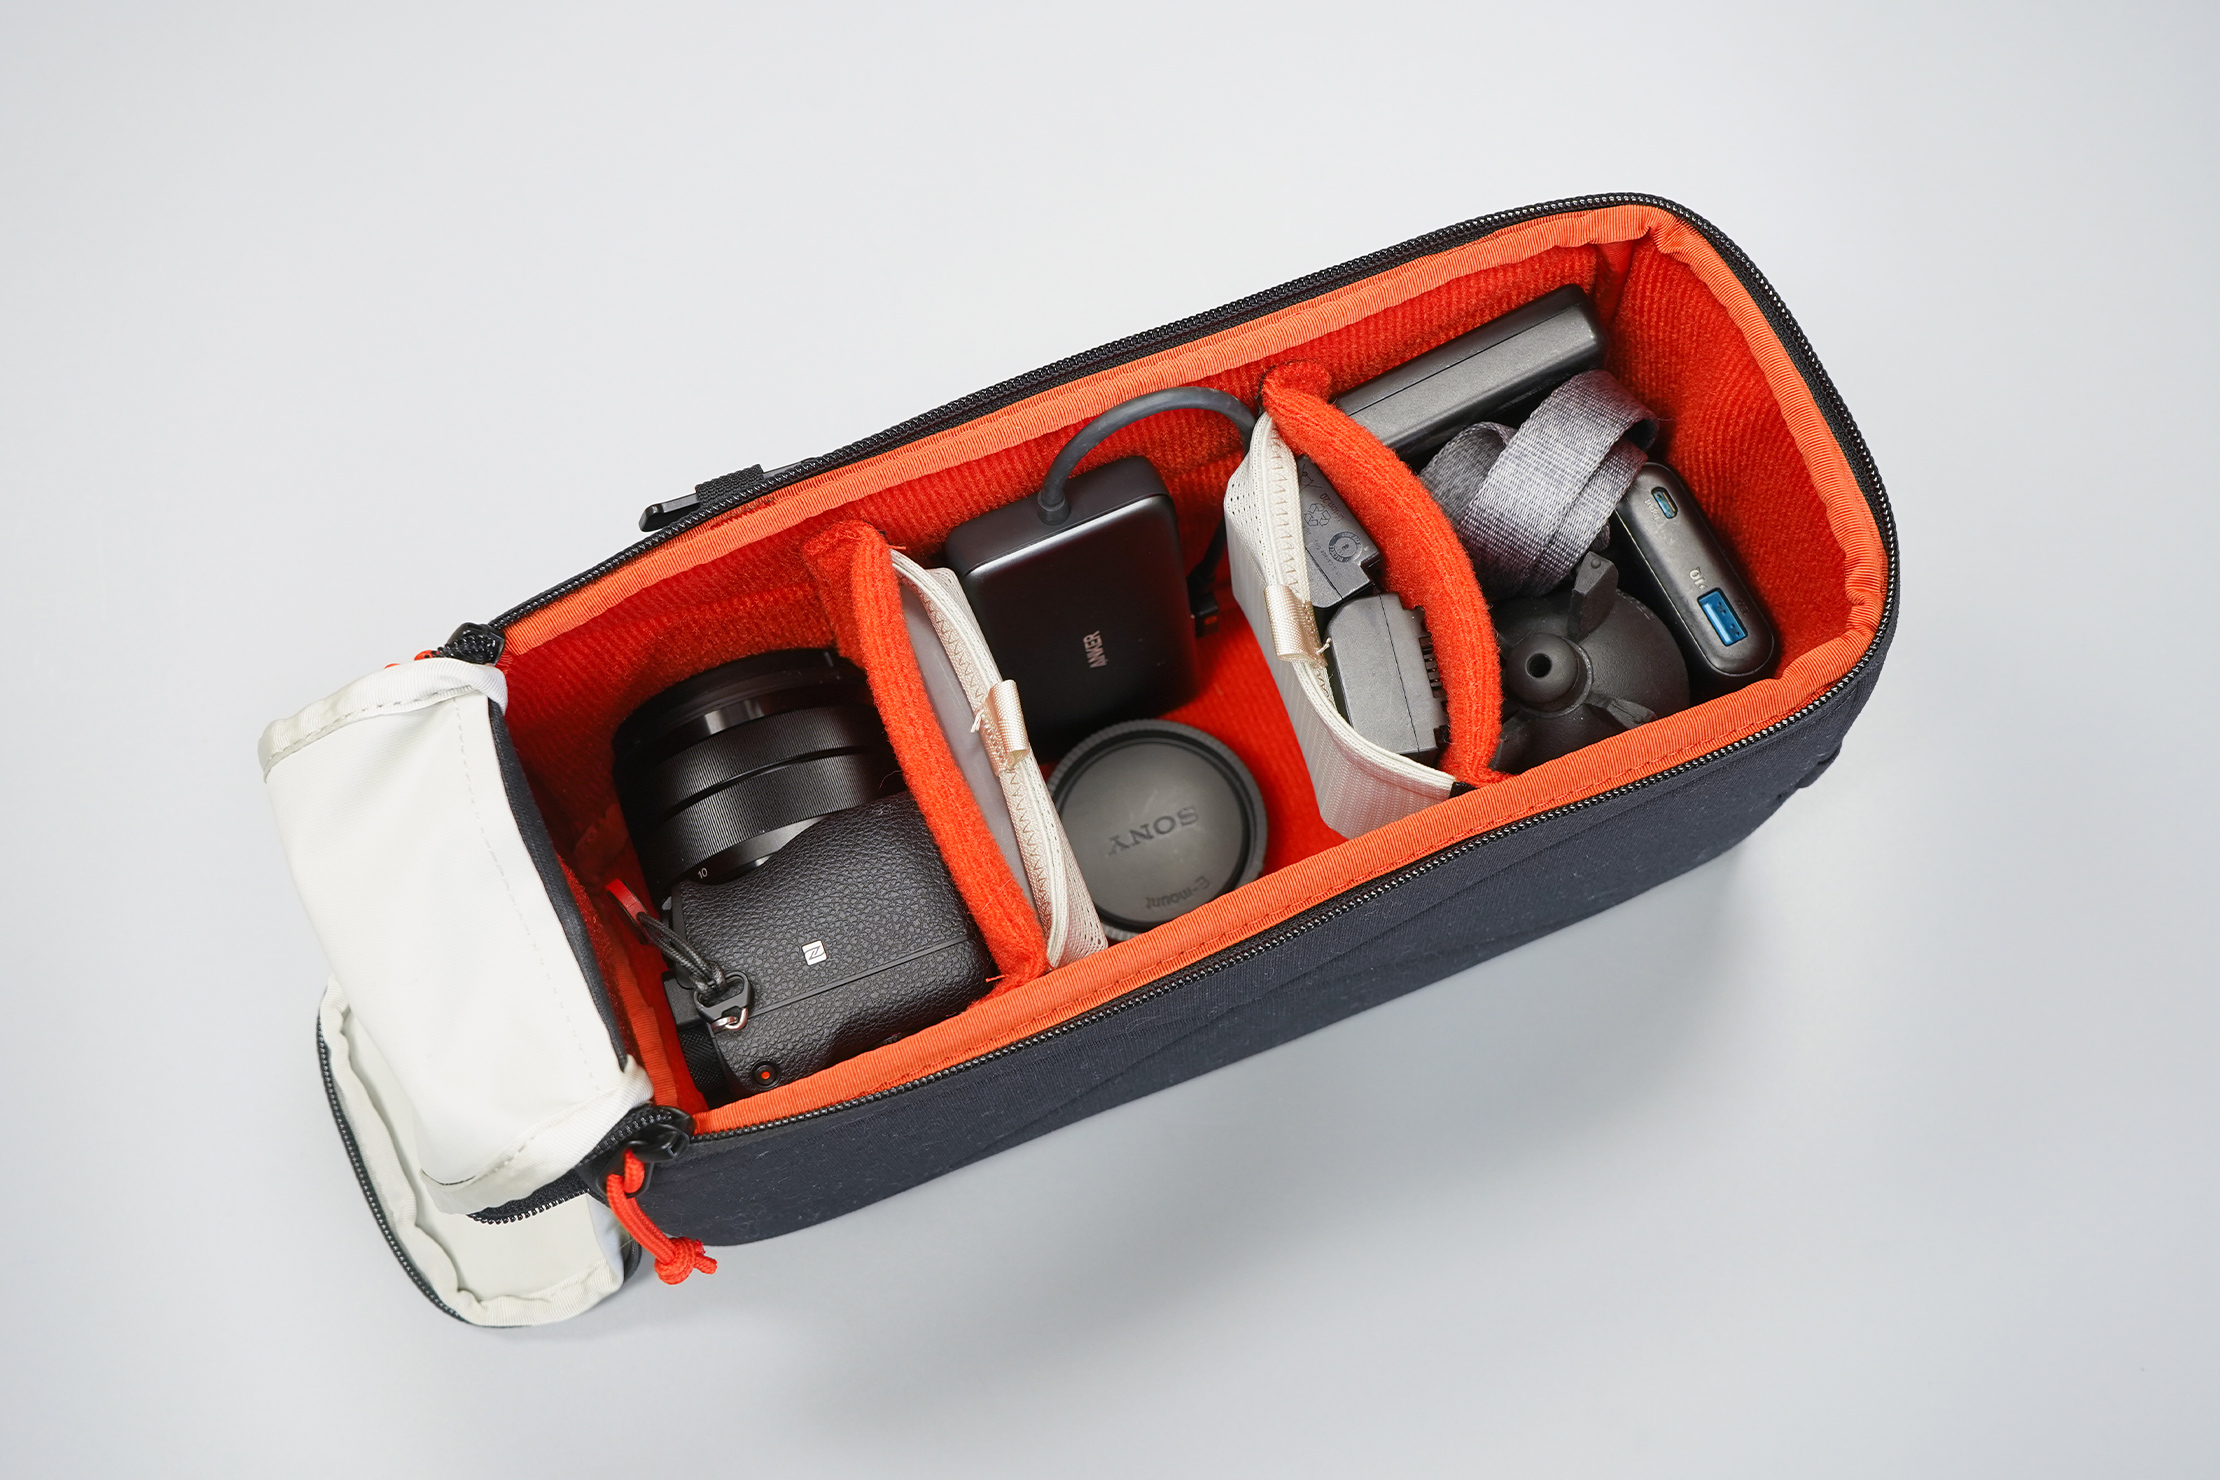 Moment MTW Camera Insert 5L | Packing the interior